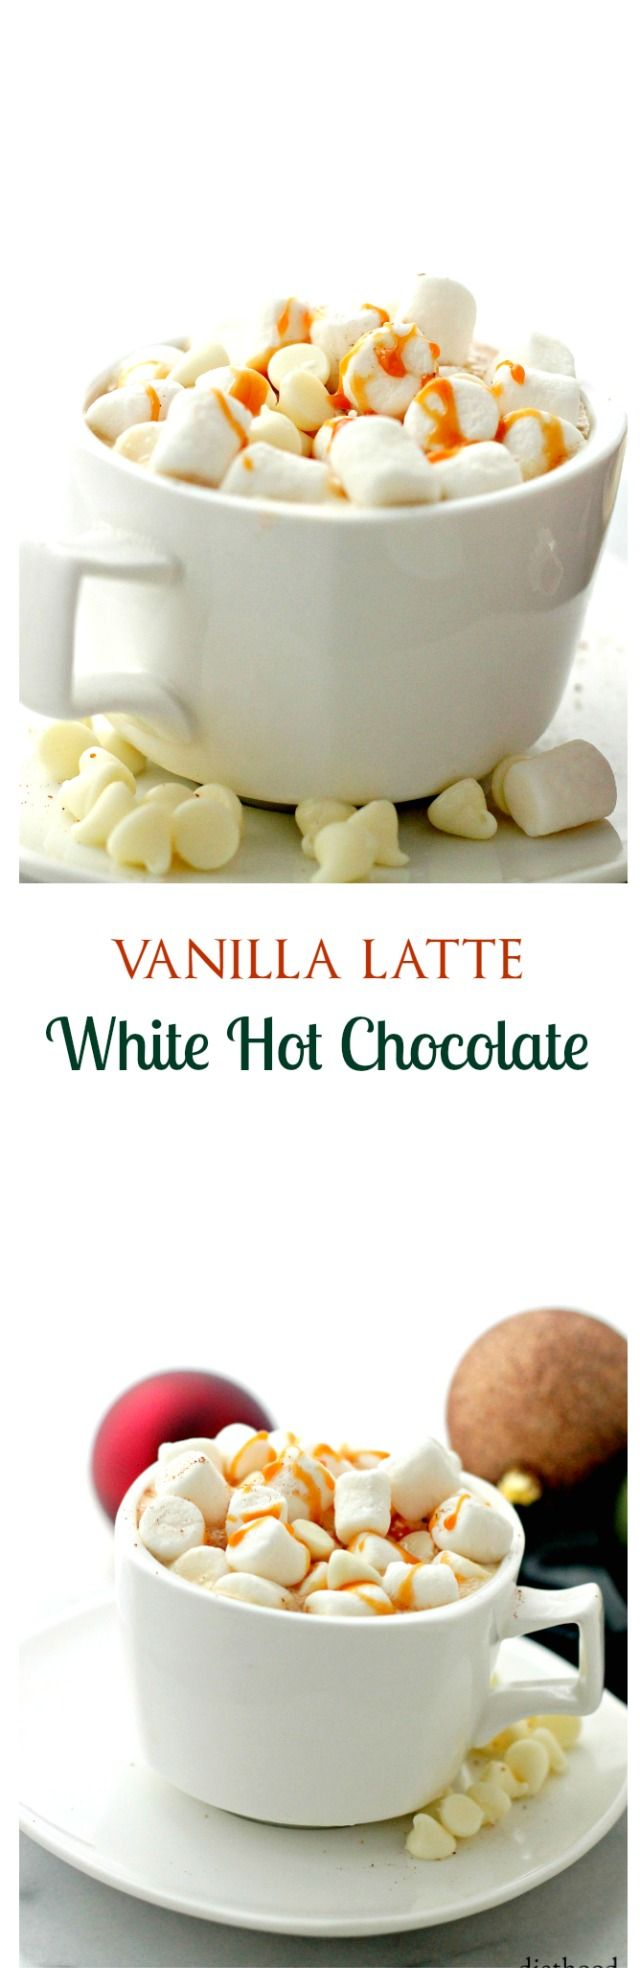 Vanilla Latte White Hot Chocolate | www.diethood.com | Delicious and homemade White Hot Chocolate mixed with a shot of espresso and vanilla.